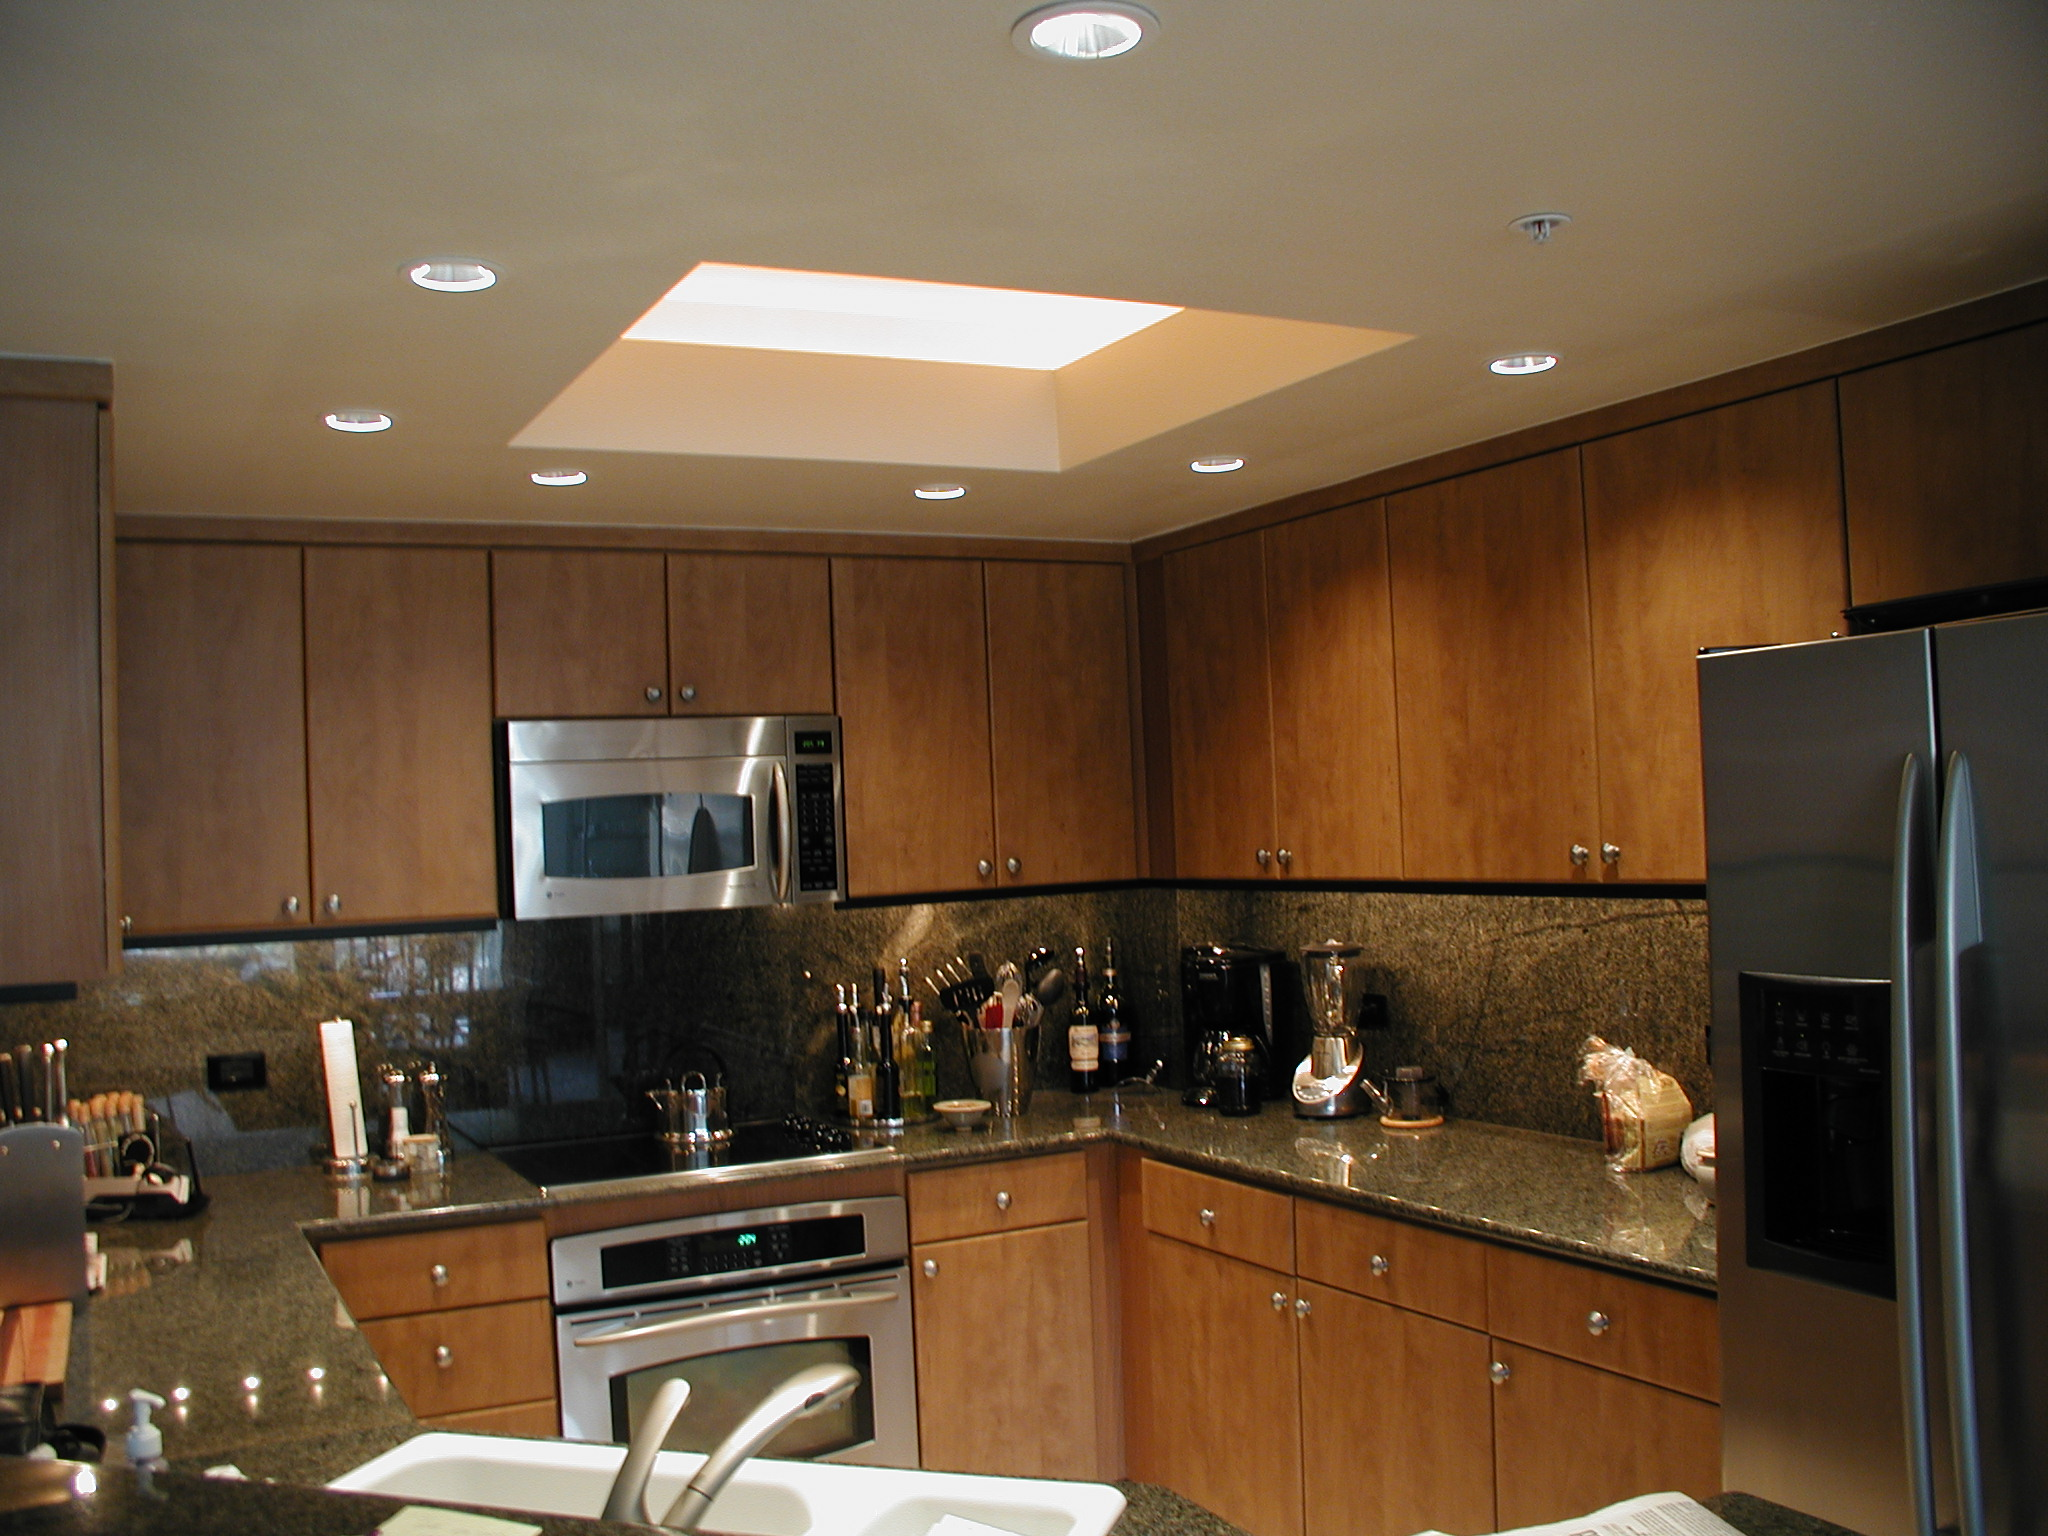 interior best recessed lights recessed flourescent kitchen lighting design kitchen s decor ideas seagull lighting recessed lighting led